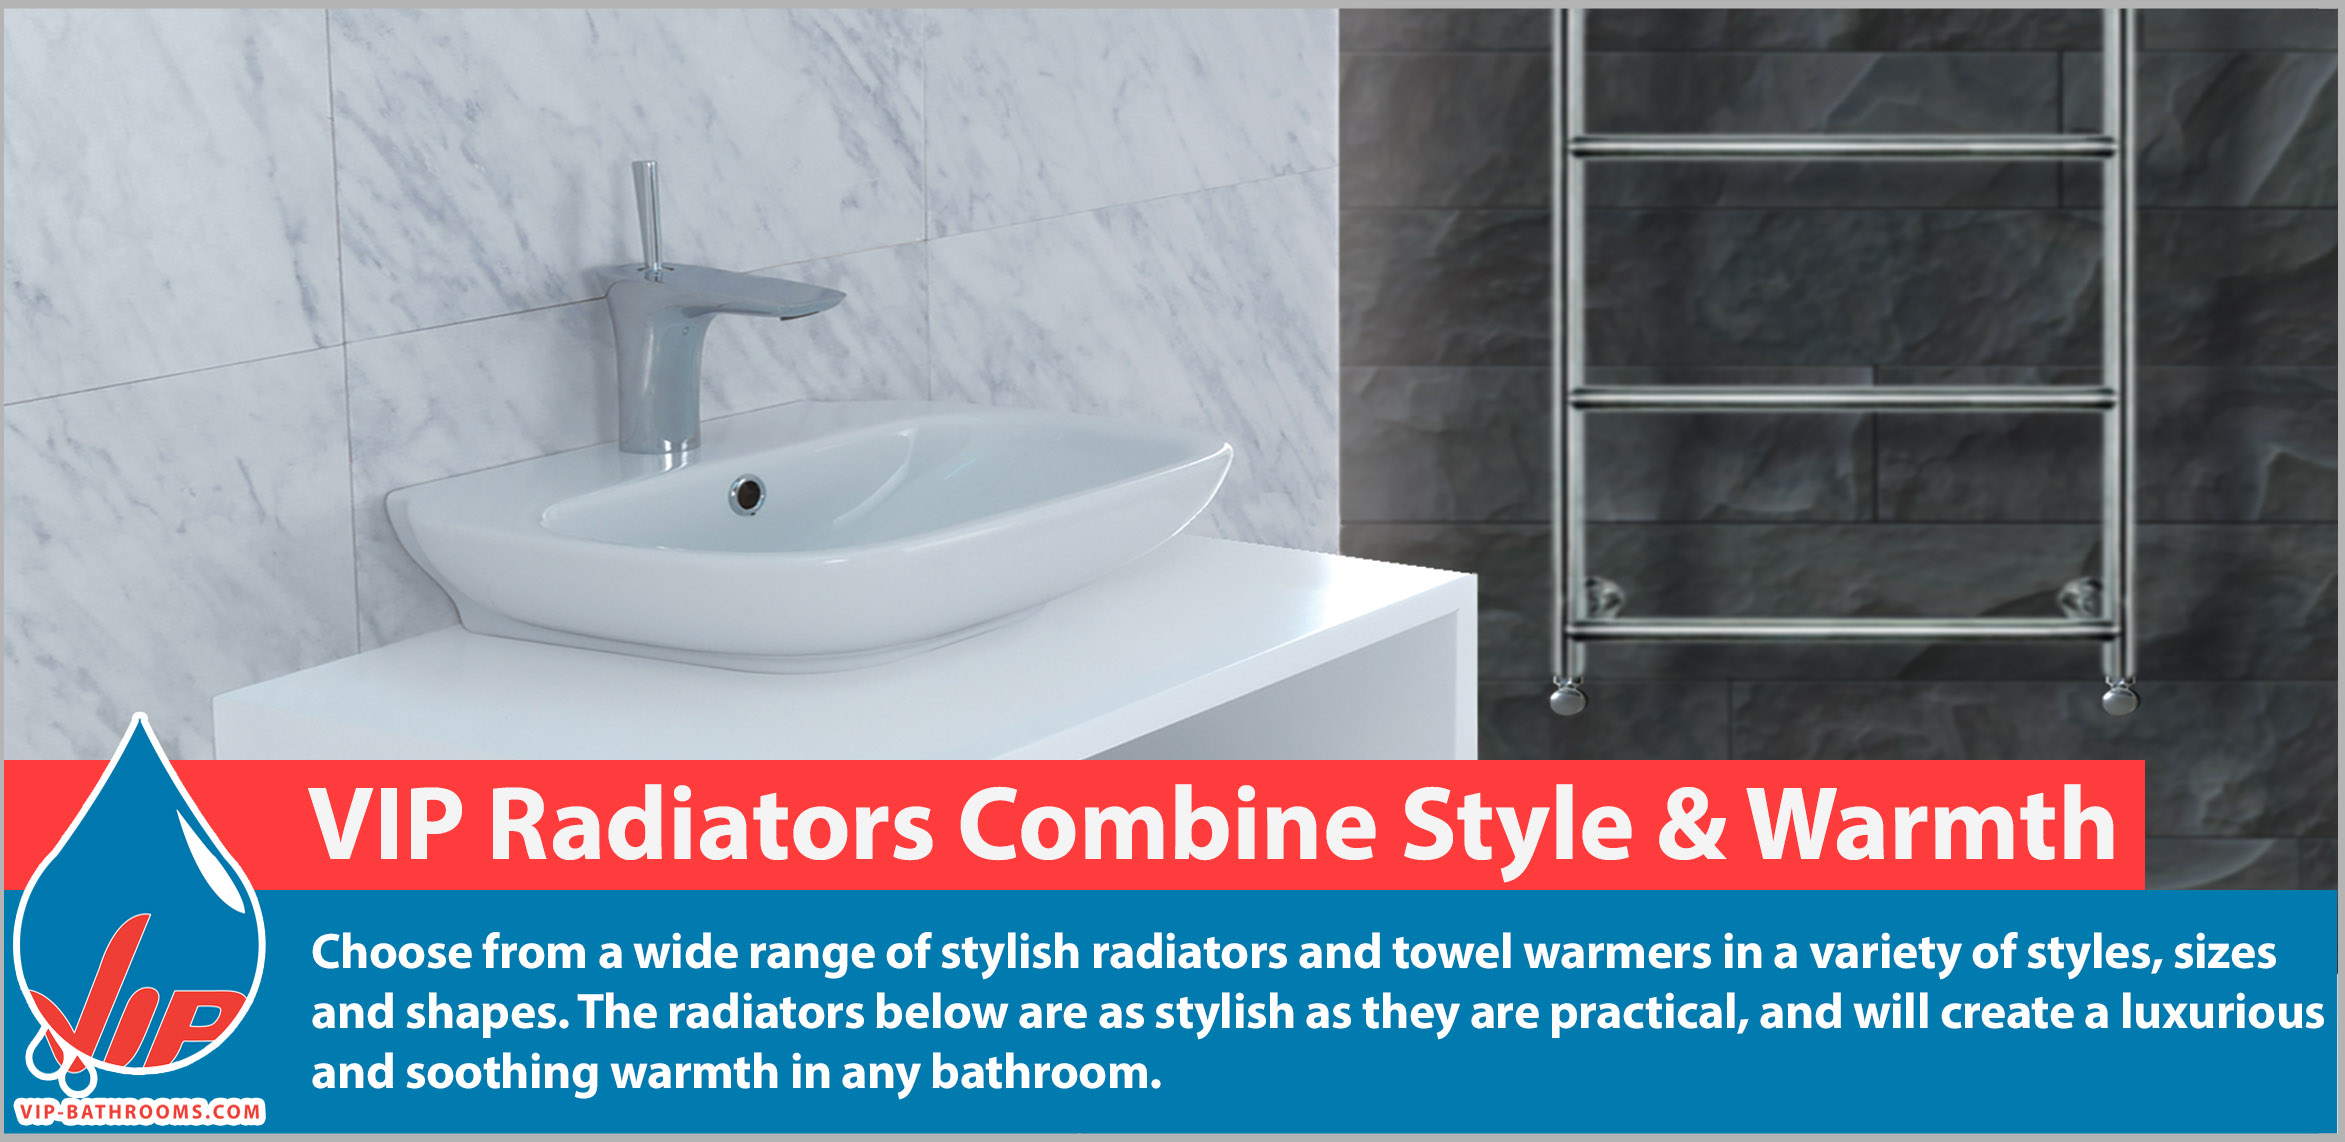 Choose from a huge range of stylish radiators and towel warmers in a wide variety of styles, sizes and finishes. The radiators below are as stylish as they are practical, and will create a luxurious warmth in your bathroom.